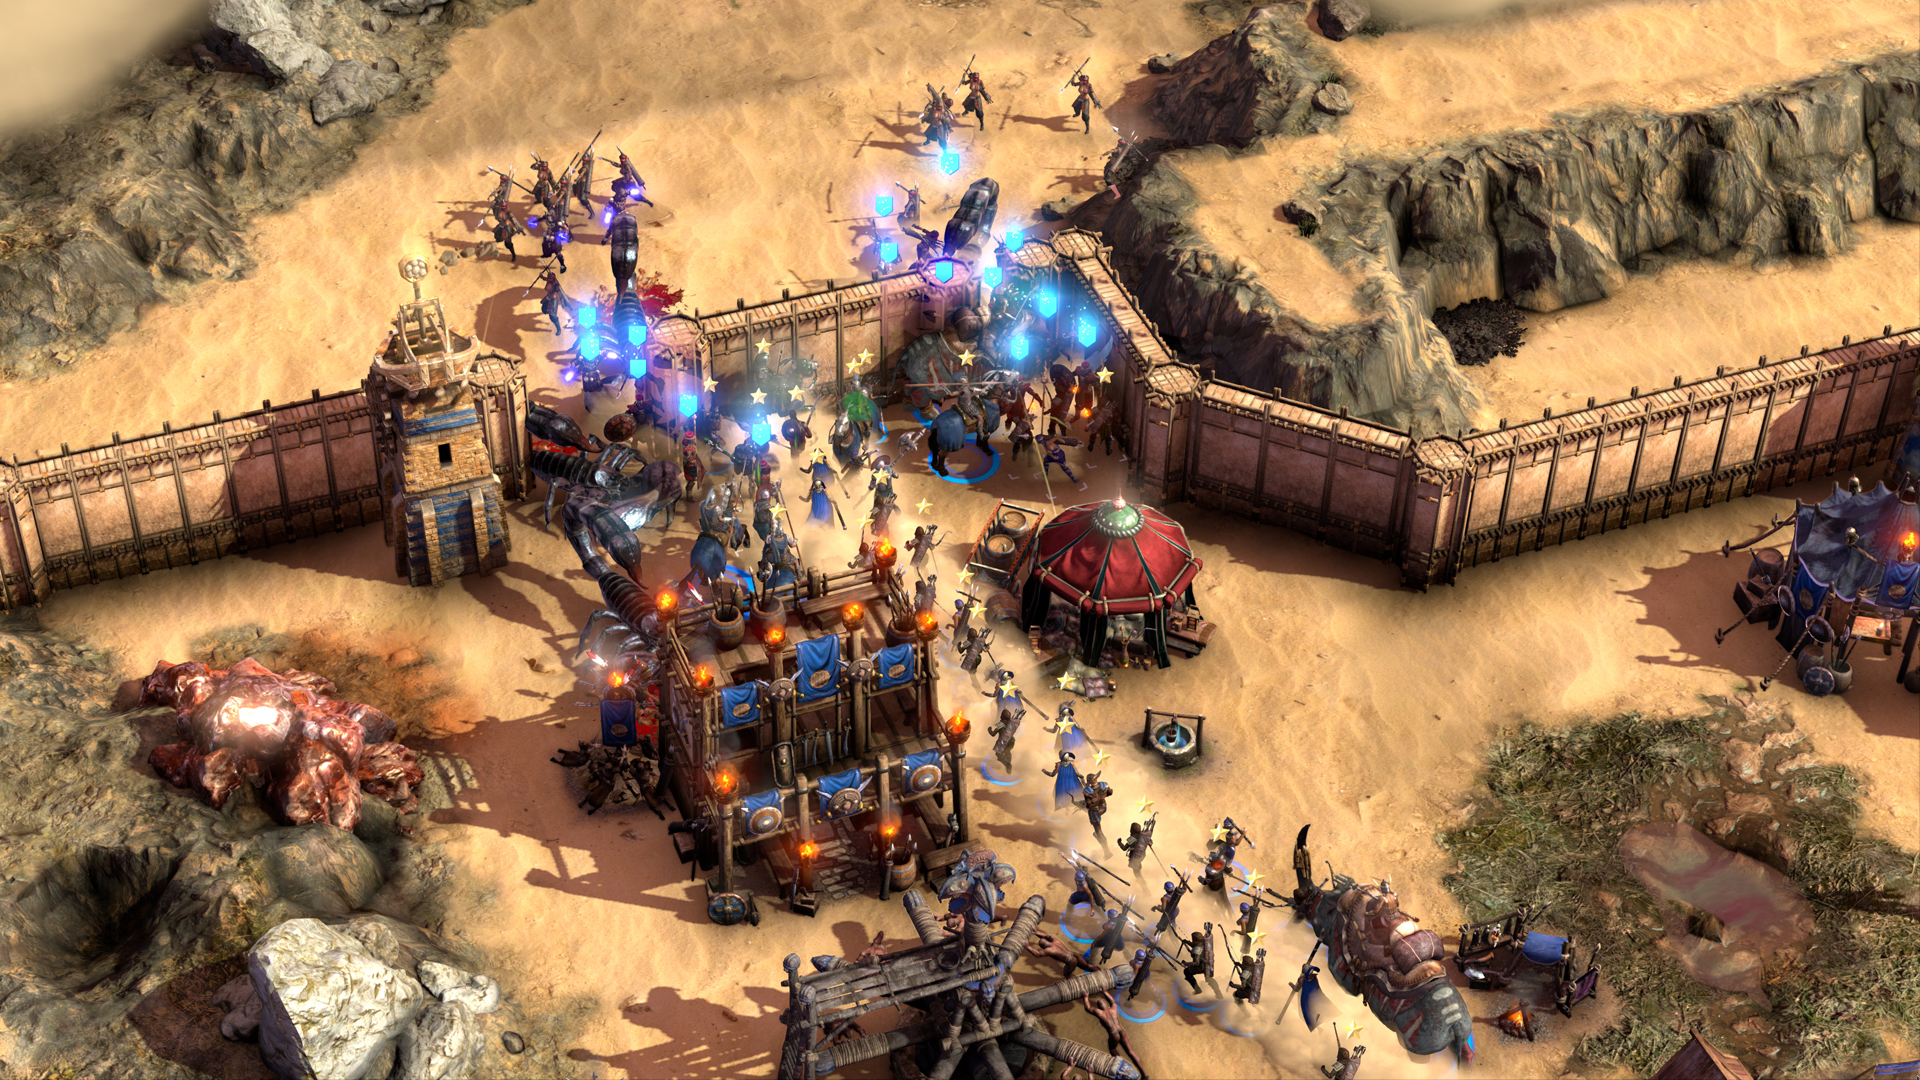 Conan Unconquered Announced - A New RTS From Veteran Command & Conquer Developers